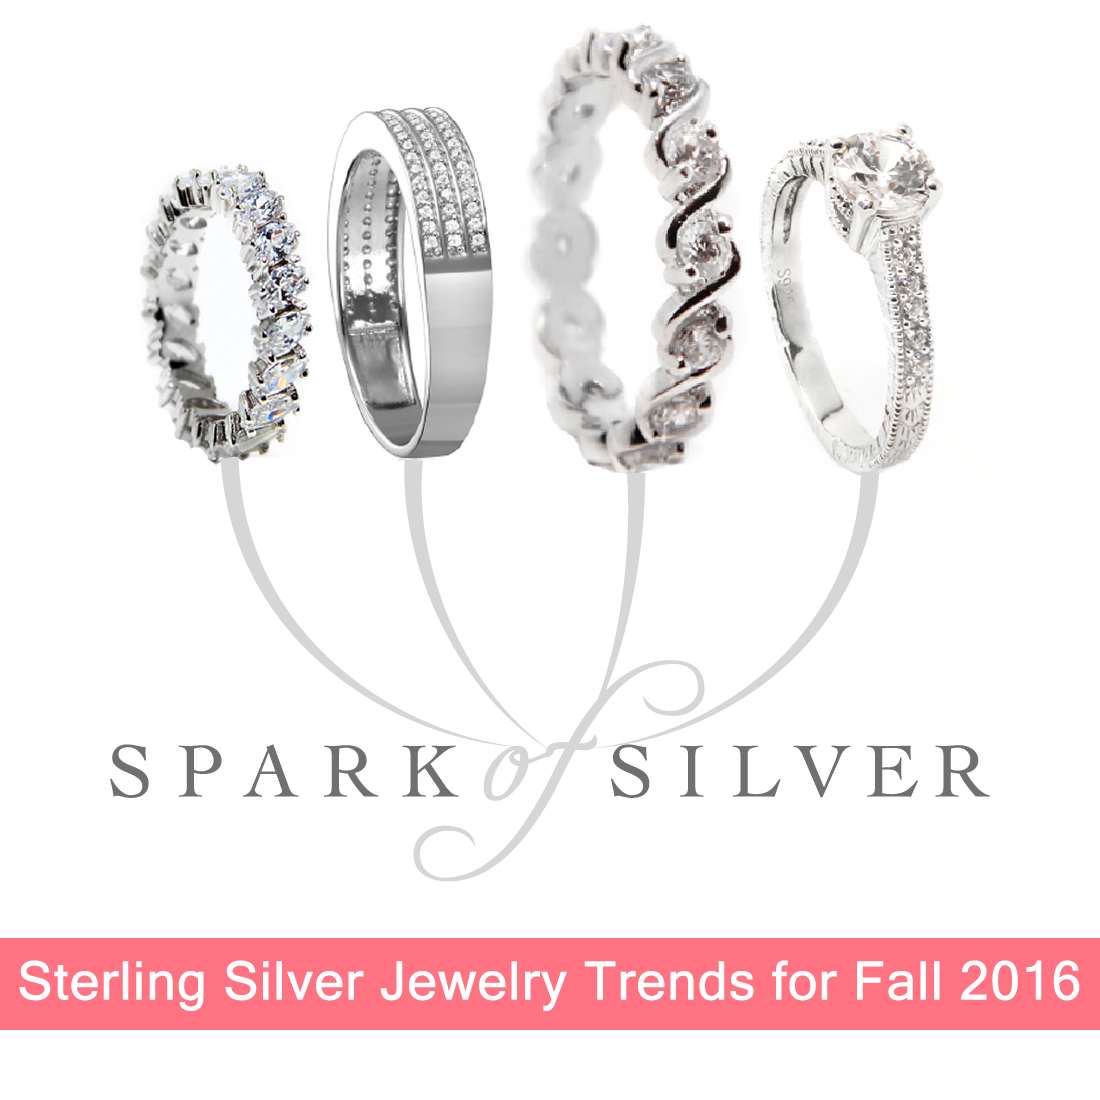 Sterling Silver Jewelry Trends for Fall 2016